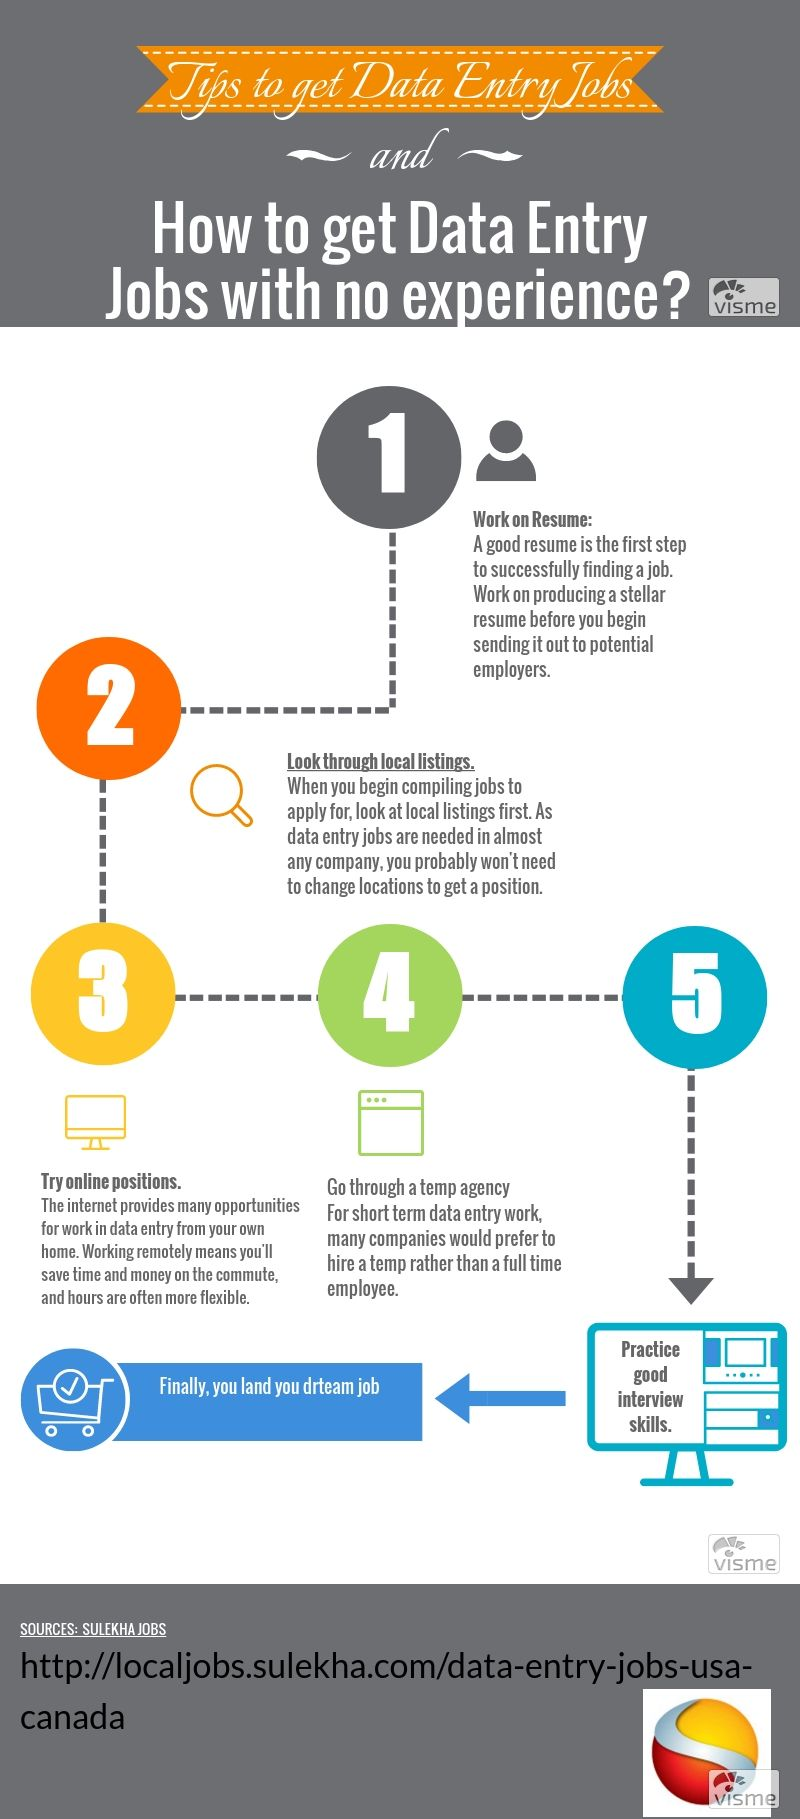 This simple infographic explains how to land data entry